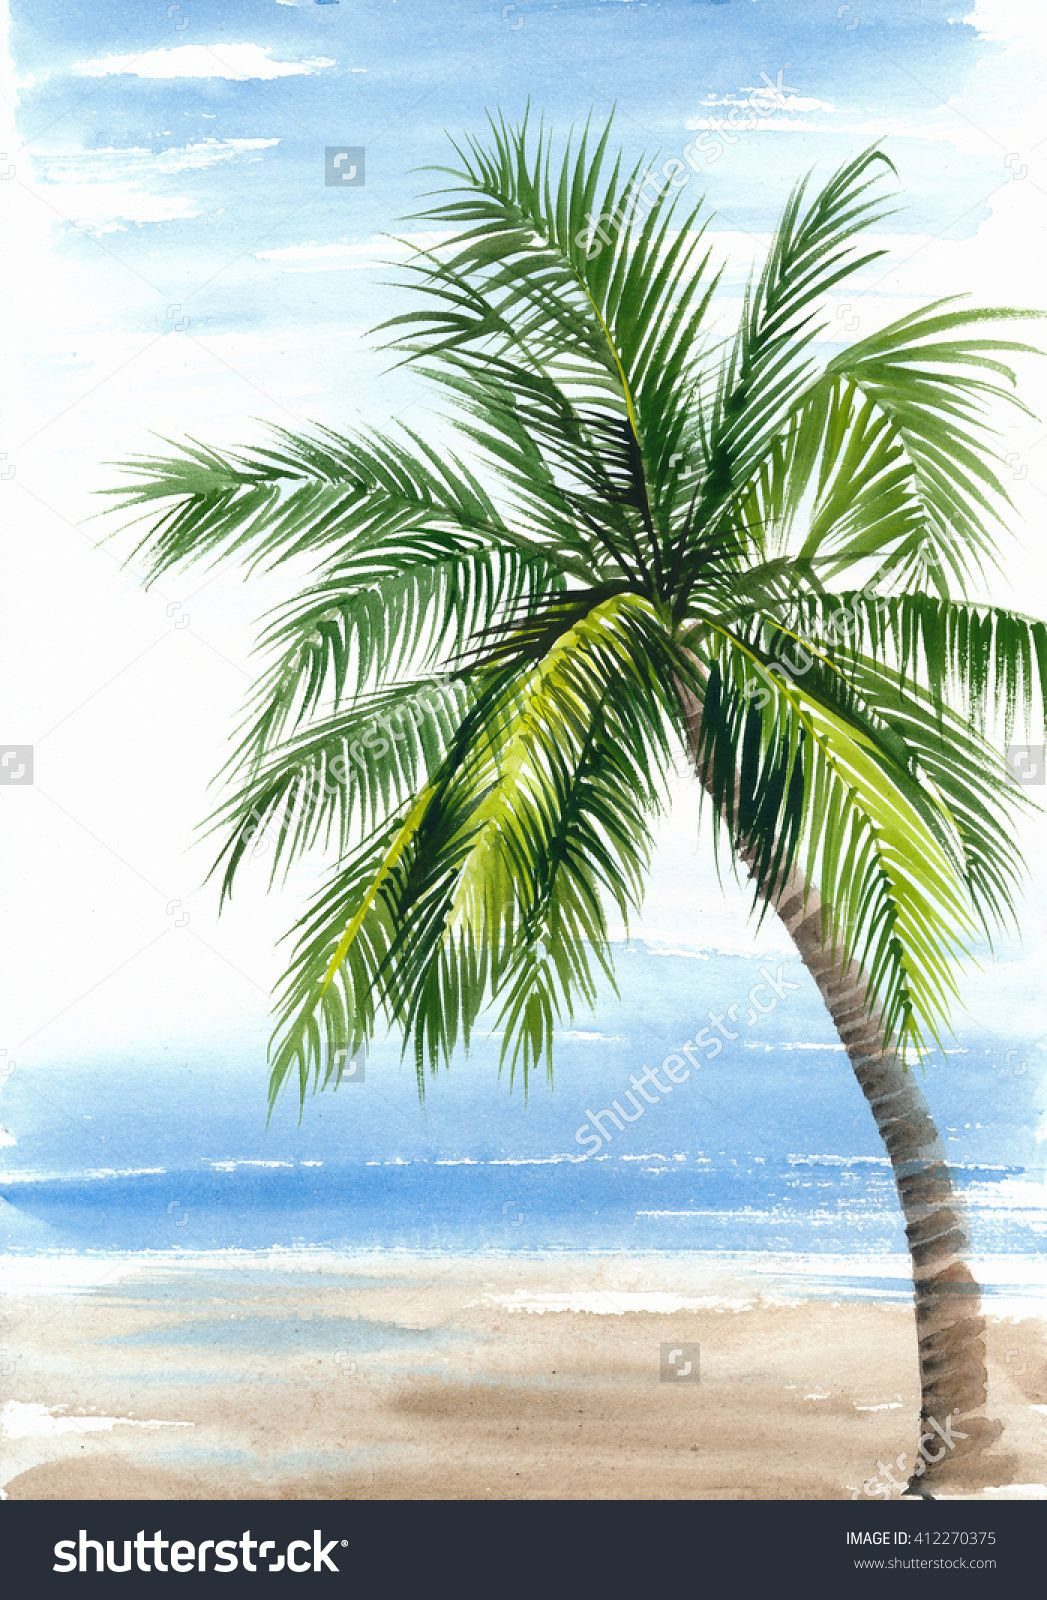 Tropical Resort View With The Seashore And Coconut Palm Original